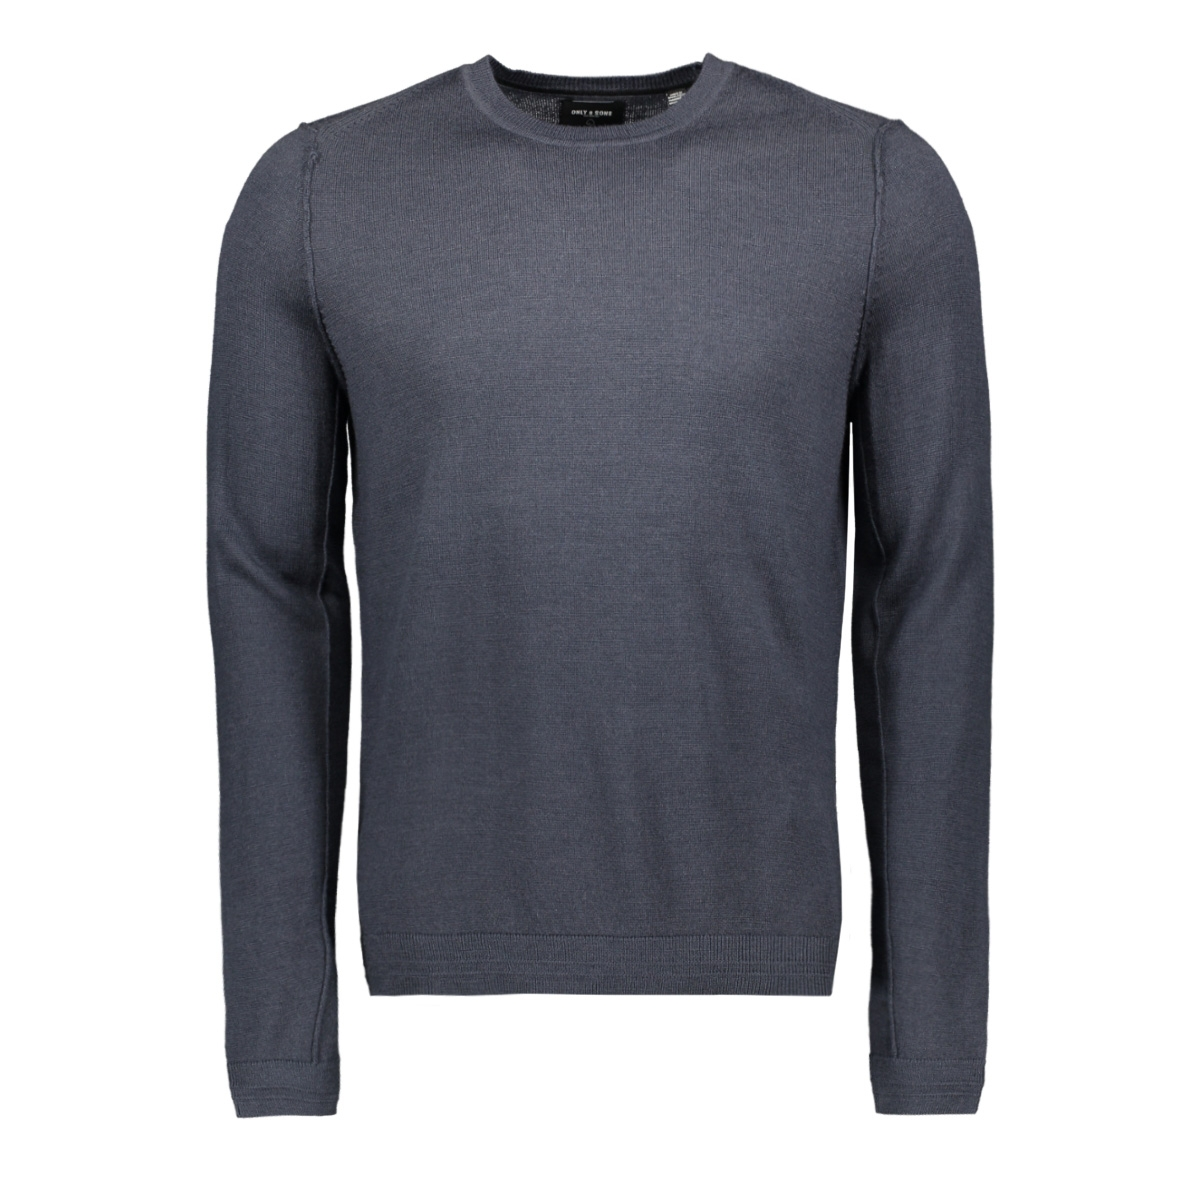 onstyler 12  m crew neck knit noos 22014162 only & sons trui blue nights